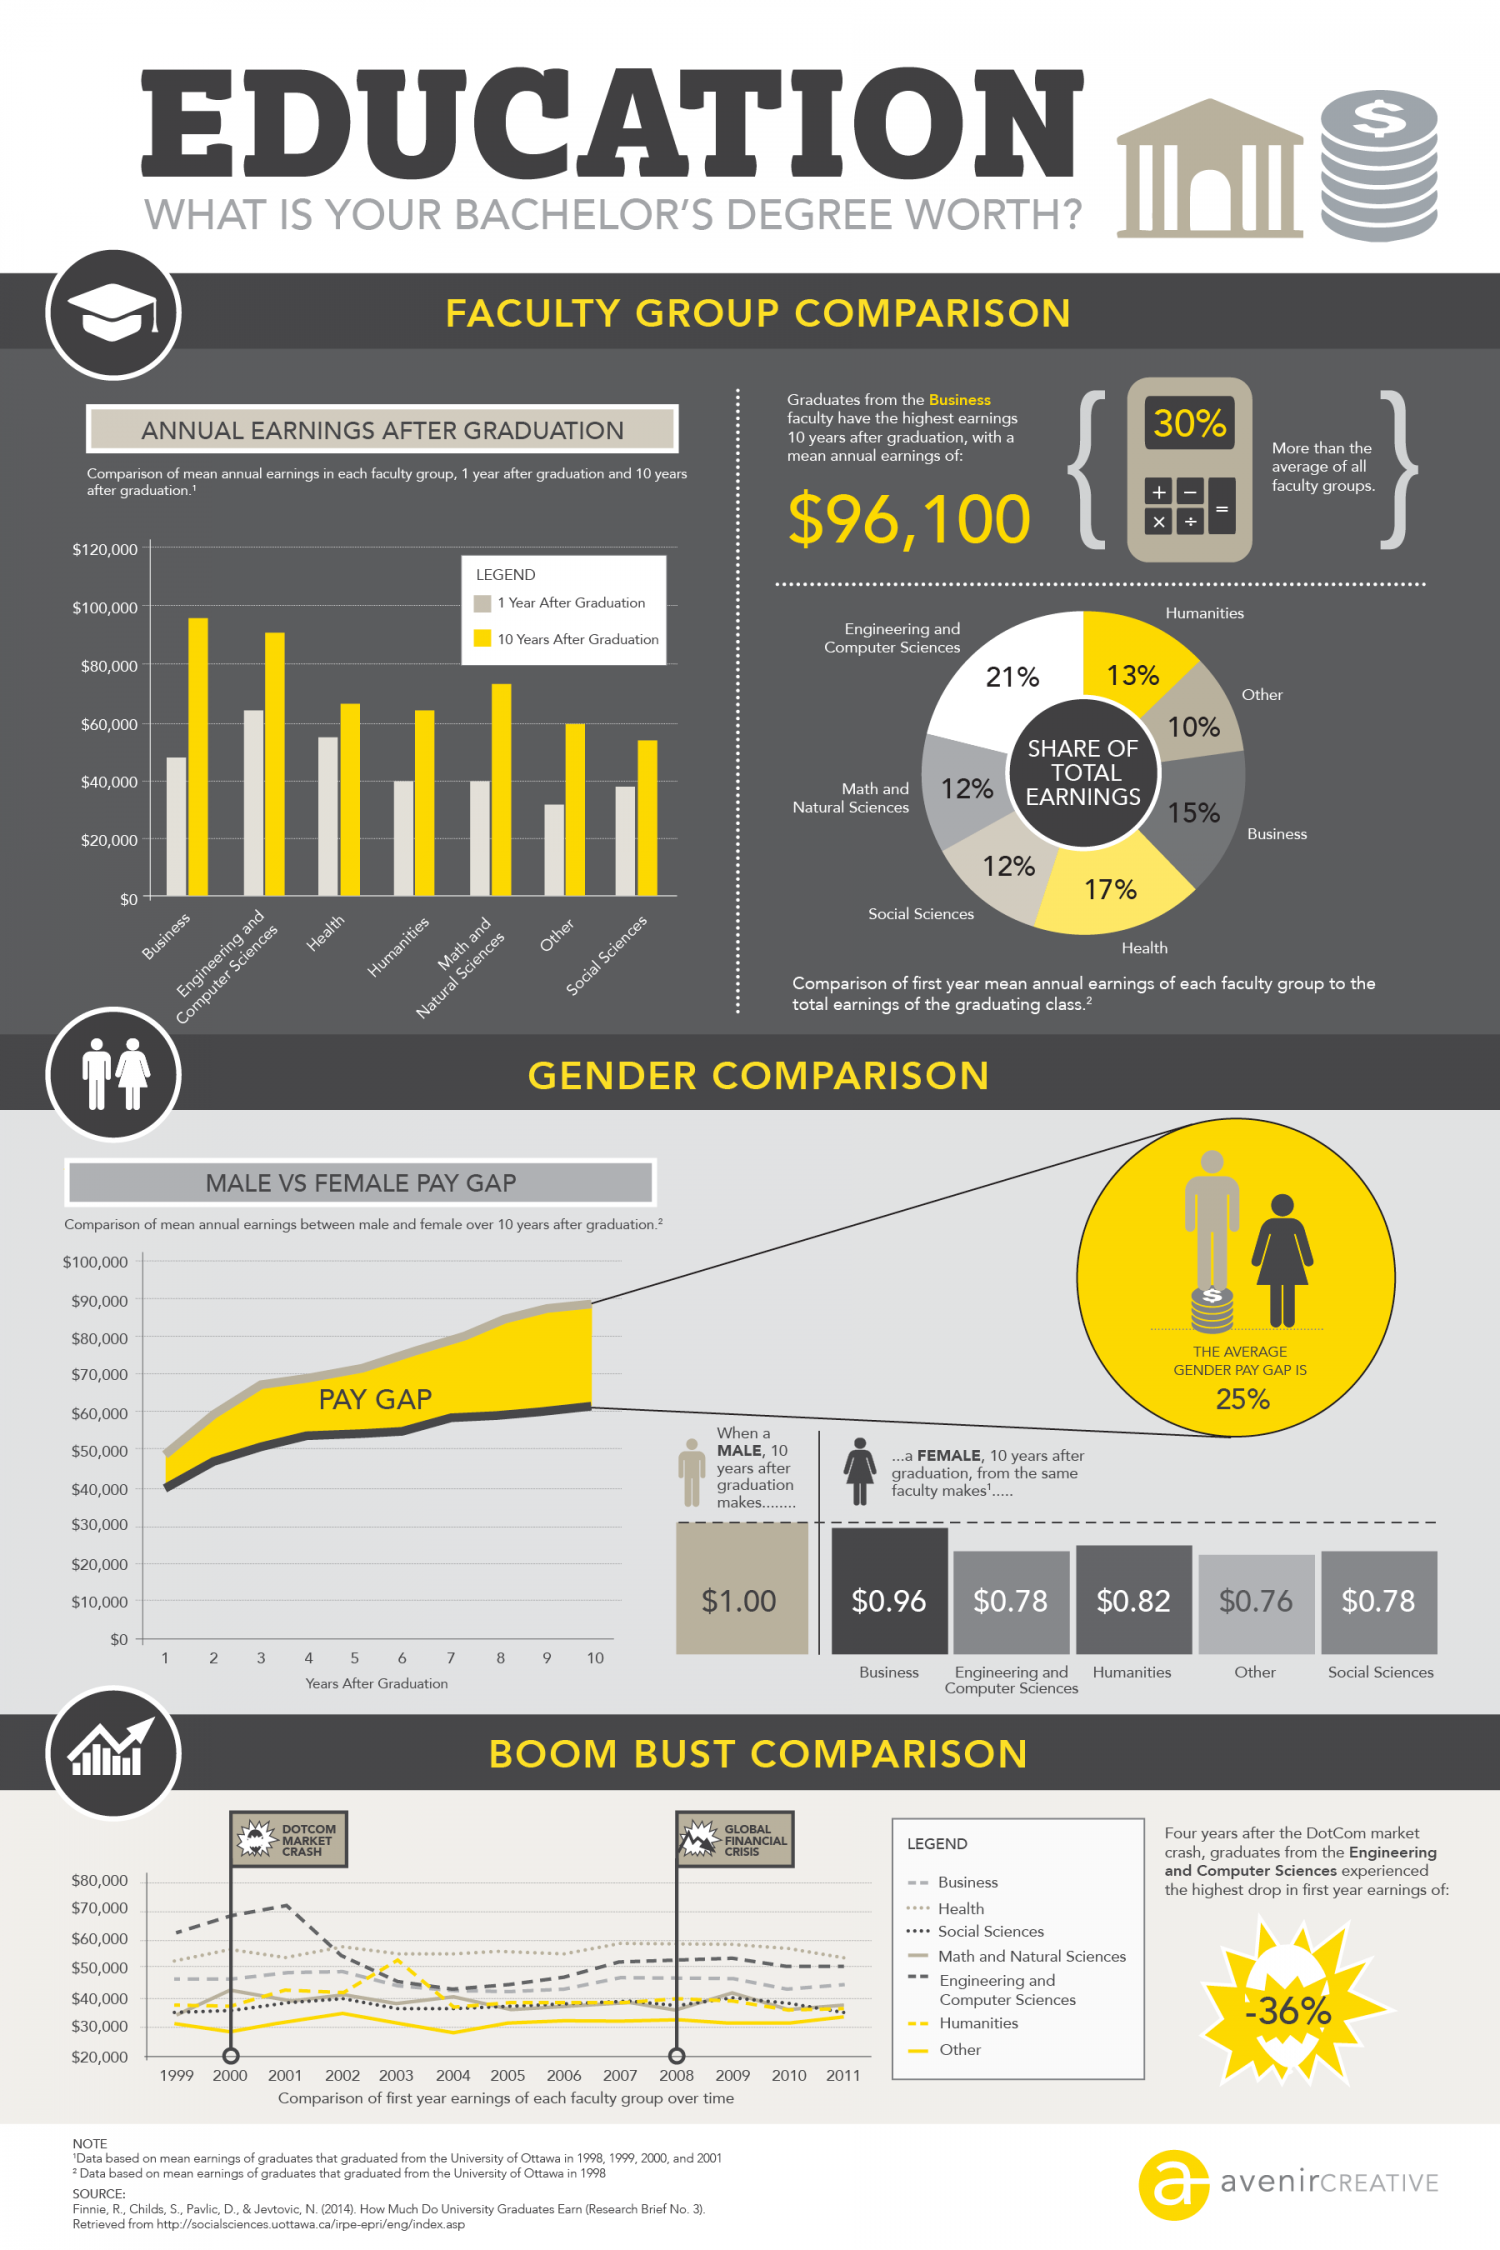 Education - What is your bachelor's degree worth? Infographic